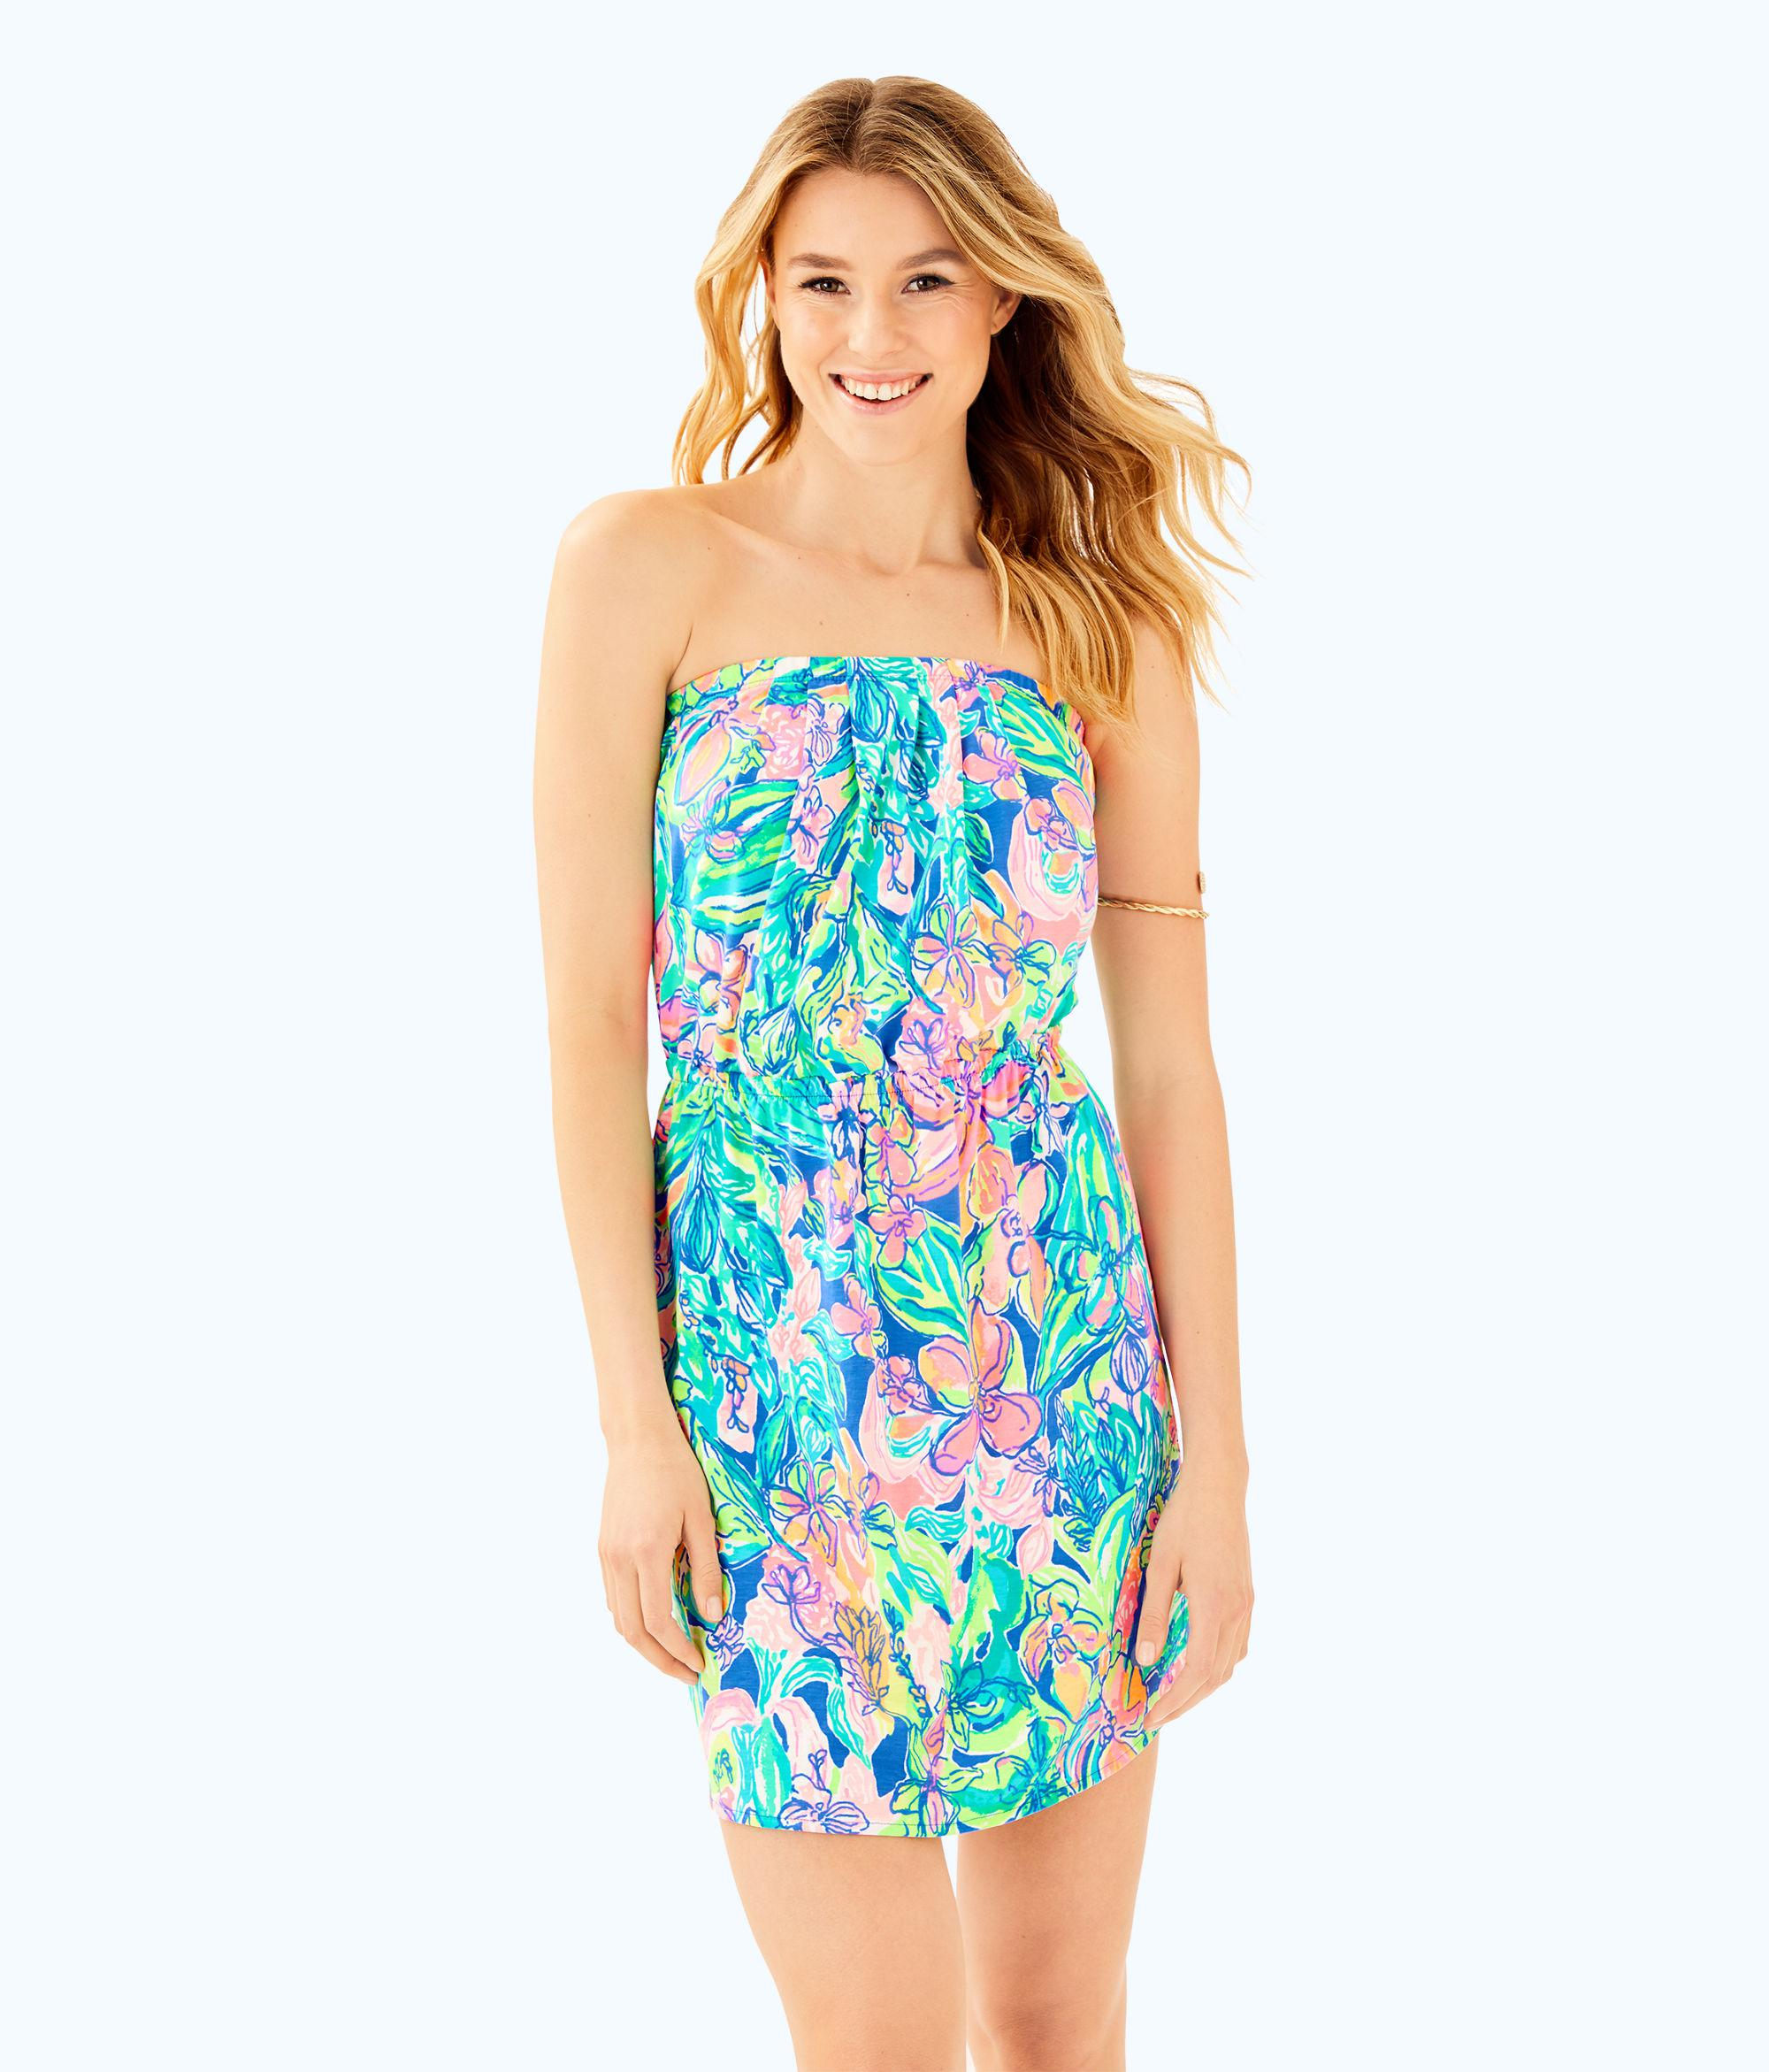 b897d000757 Lilly Pulitzer Windsor Strapless Pull-on Dress in Blue - Lyst